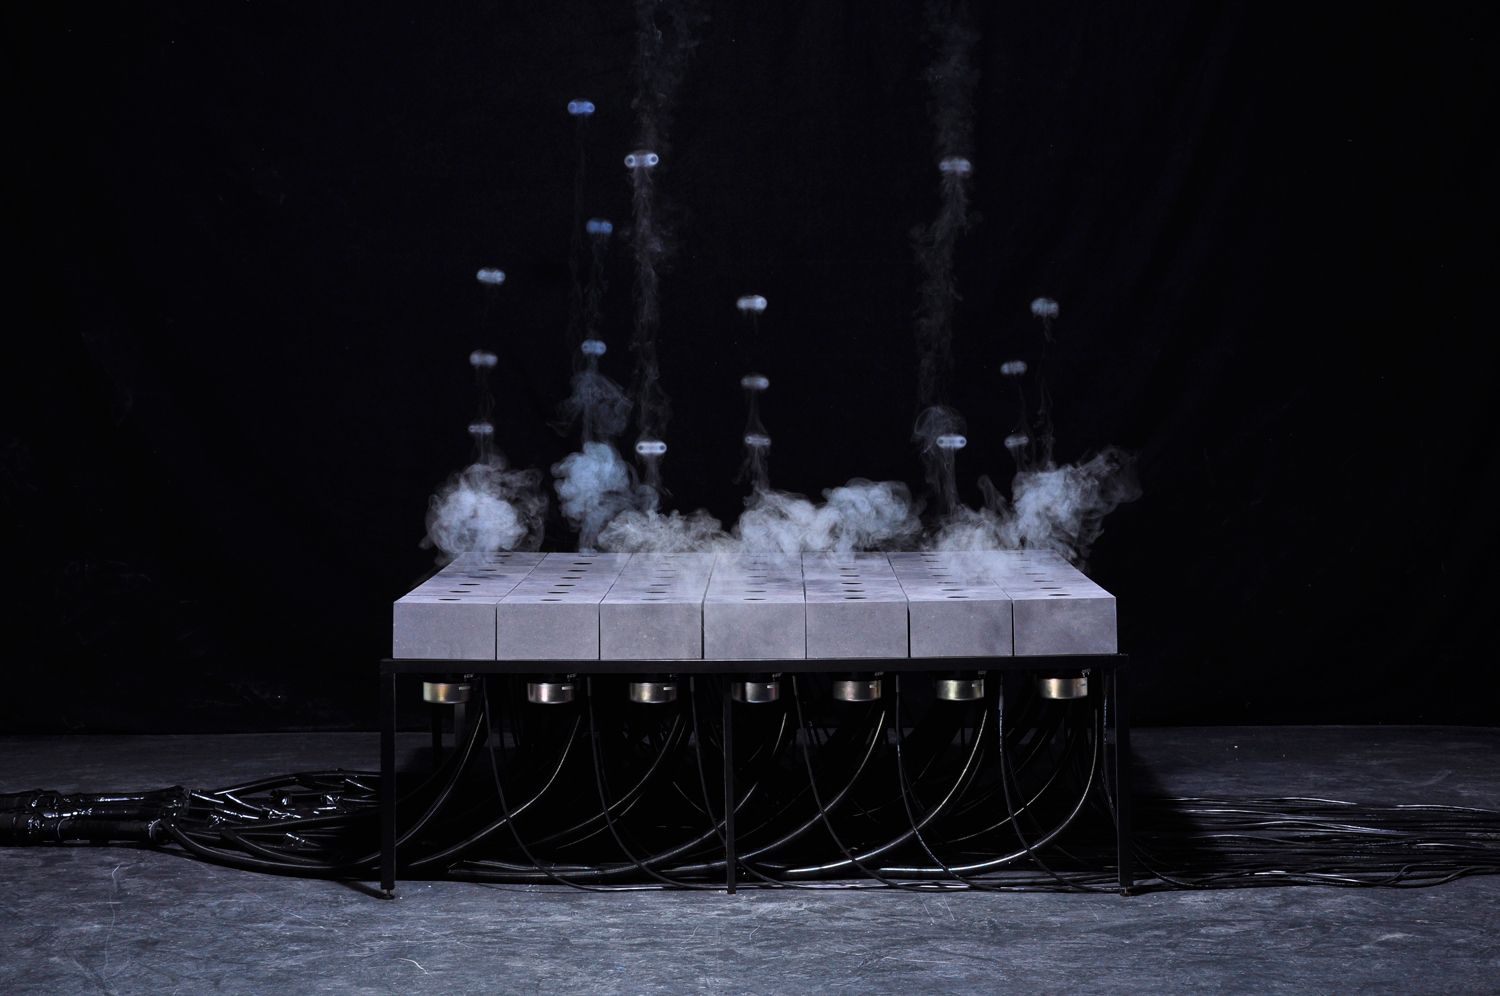 A Grid of Audio Speakers That Shoots Fleeting Patterns of Fog by Daniel Schulze